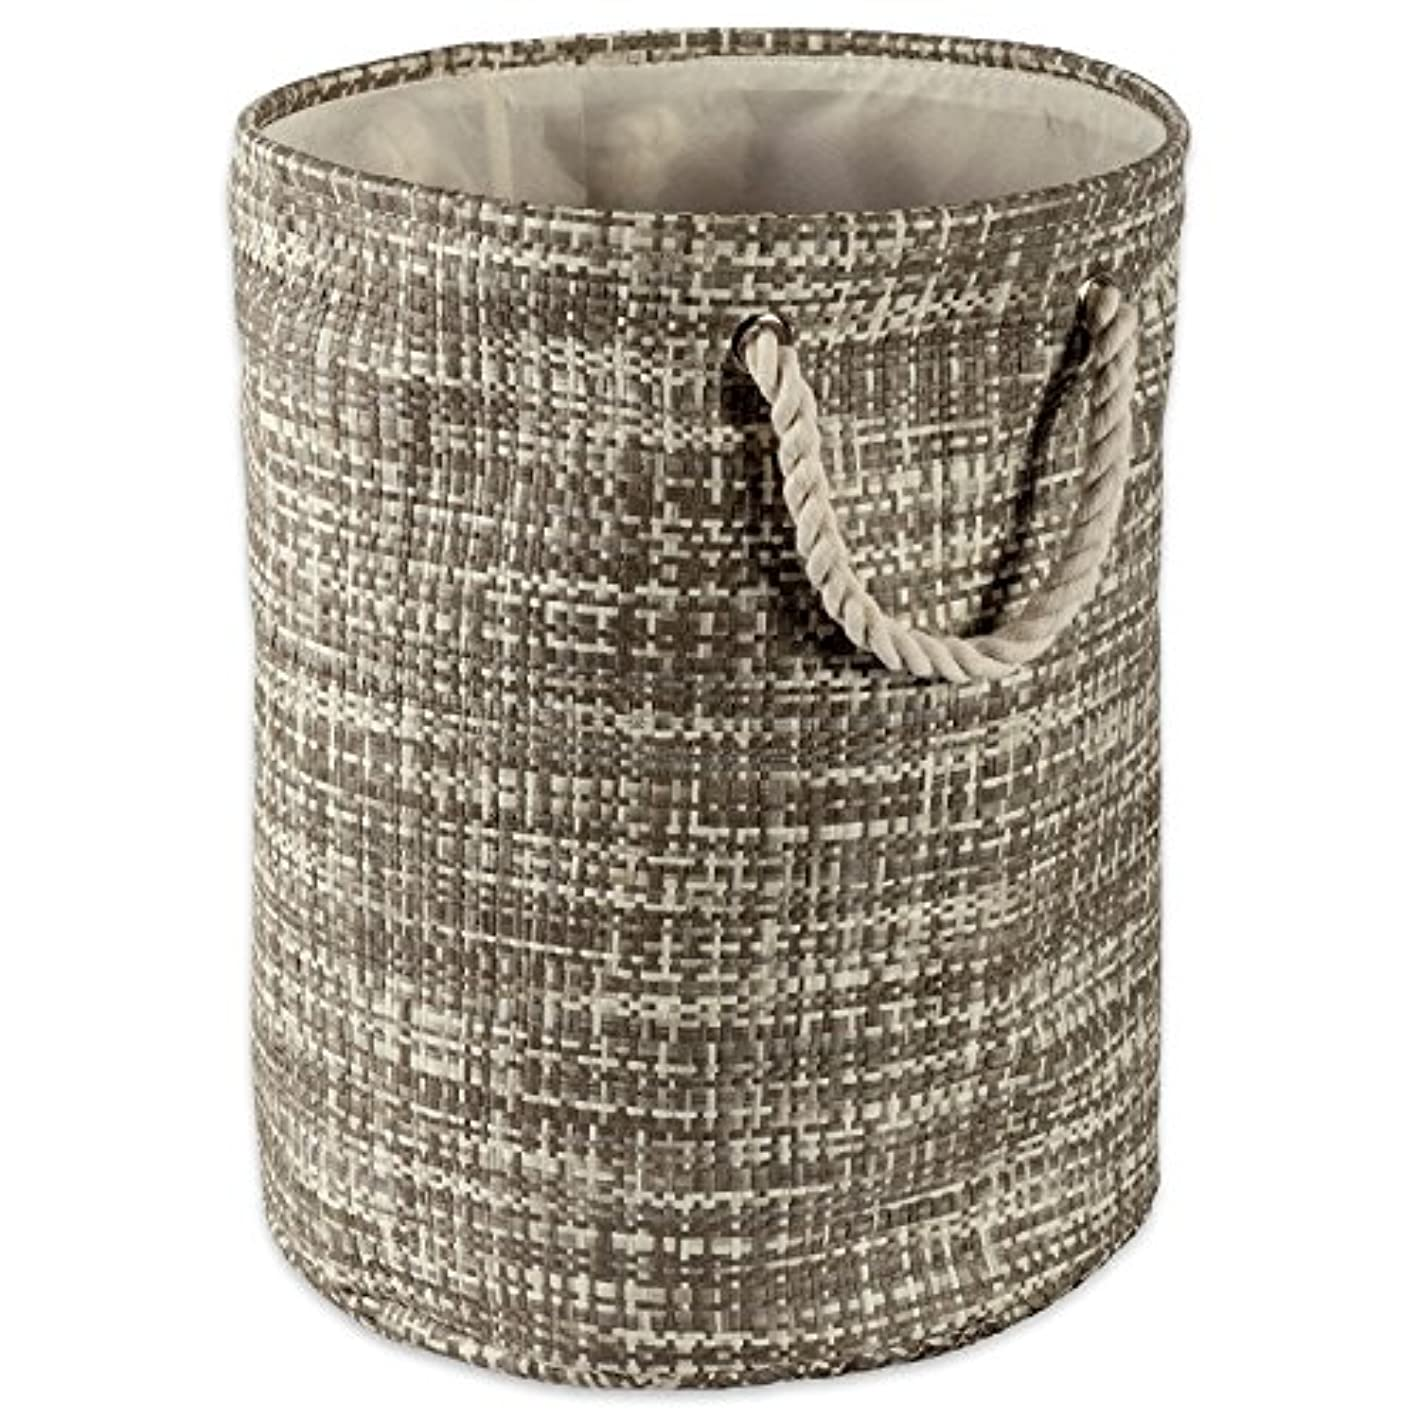 DII Woven Paper Basket or Bin, Collapsible & Convenient Organization & Storage Solution for Your Home (Large Round - 15x20